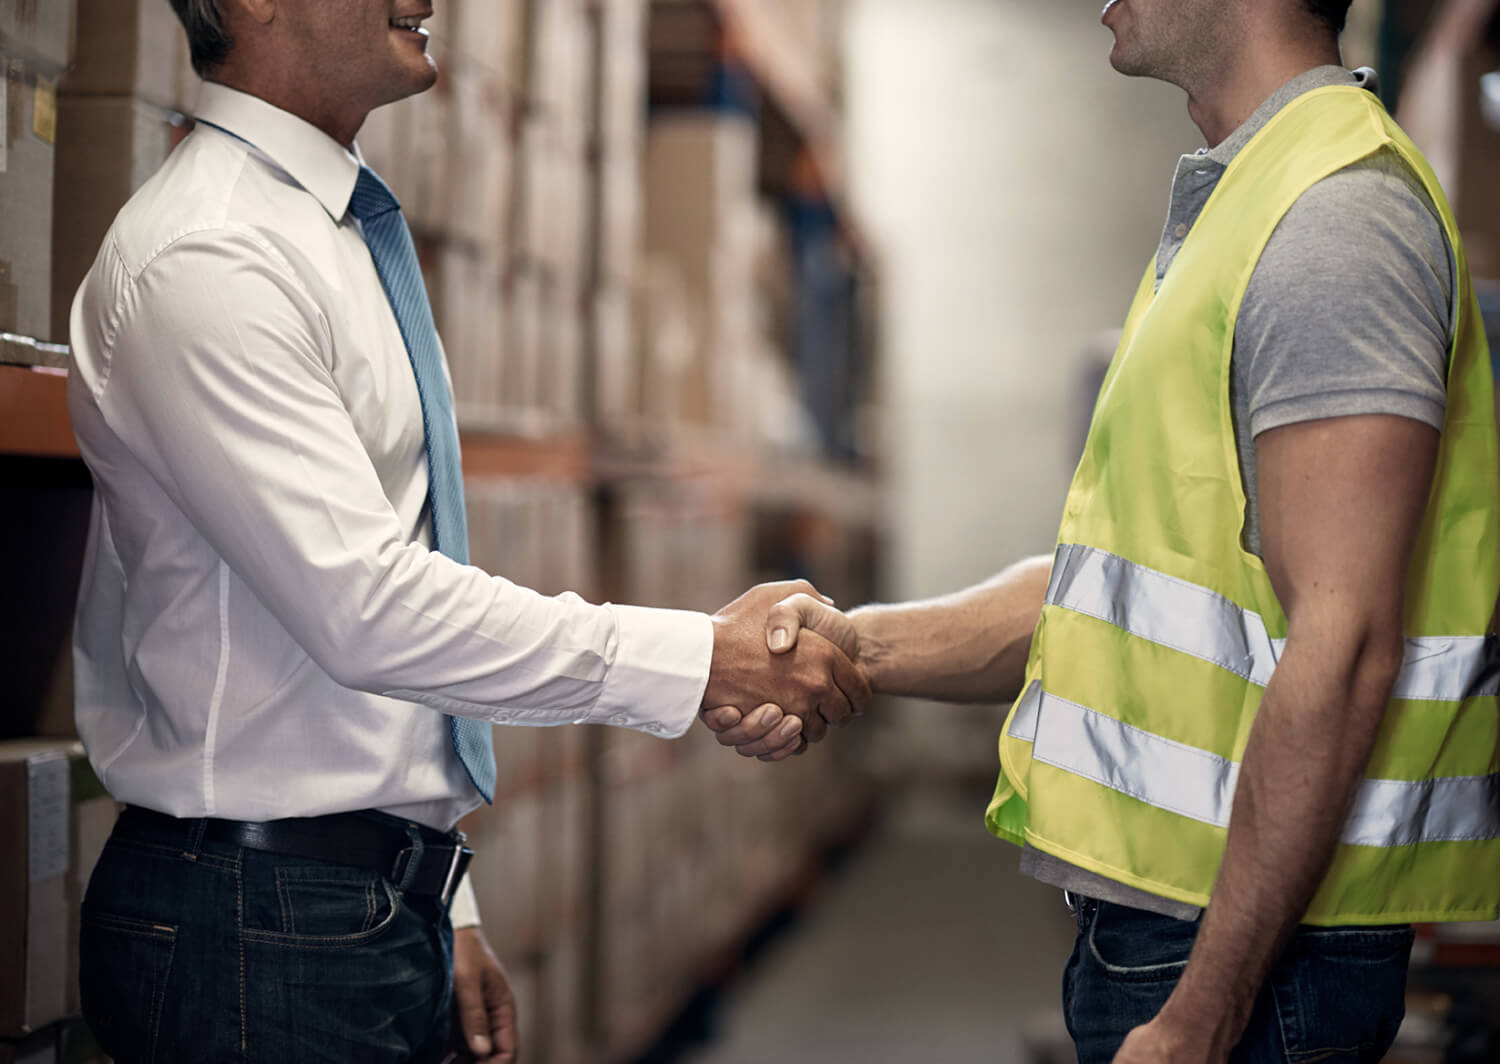 Cropped shot of two men shaking hands in a large warehousehttp://195.154.178.81/DATA/i_collage/pu/shoots/806170.jpg